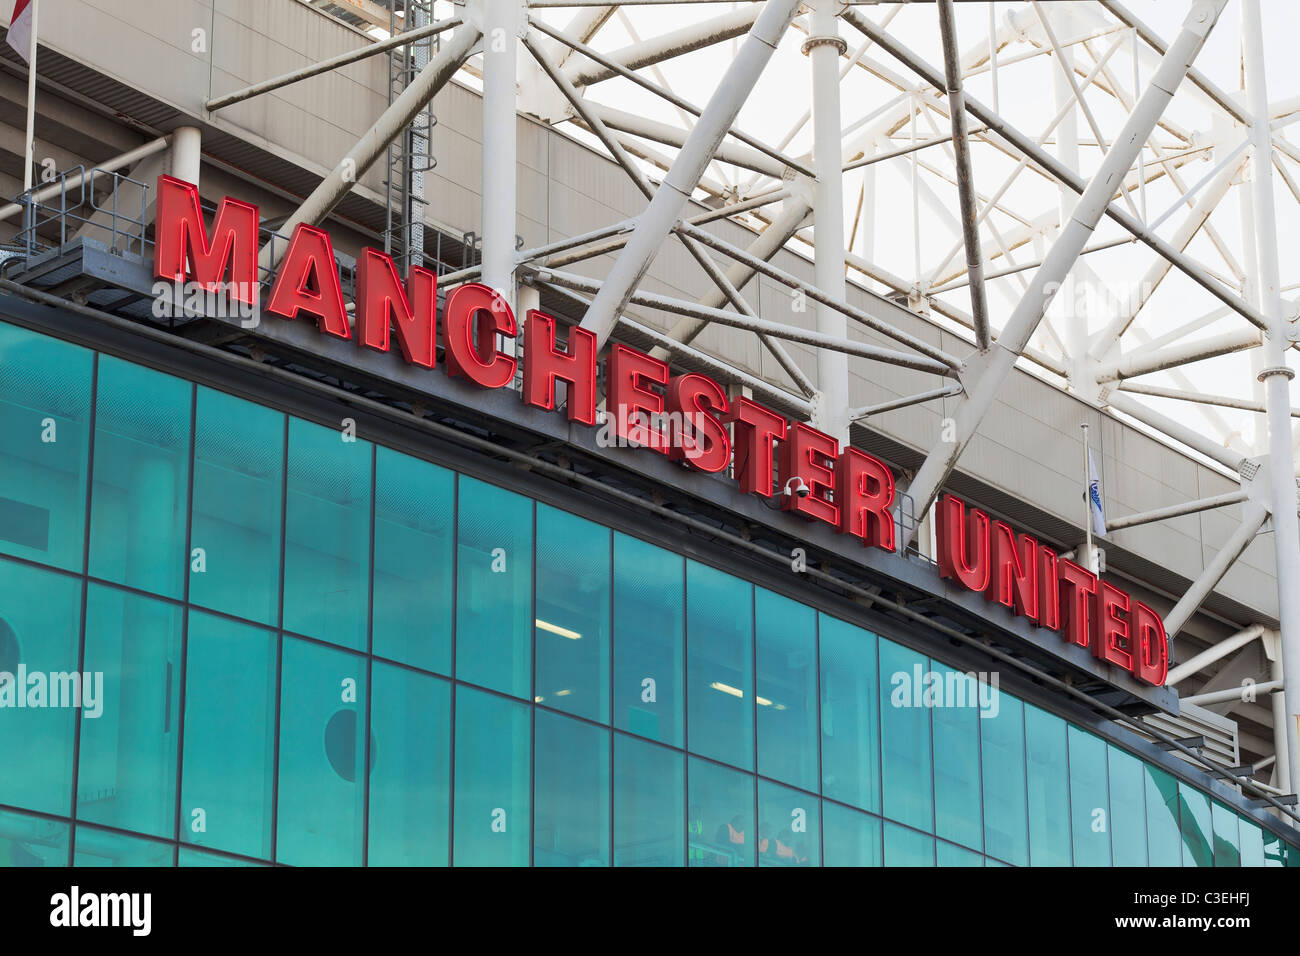 Outside Old Trafford football stadium, Manchester, England Stock Photo